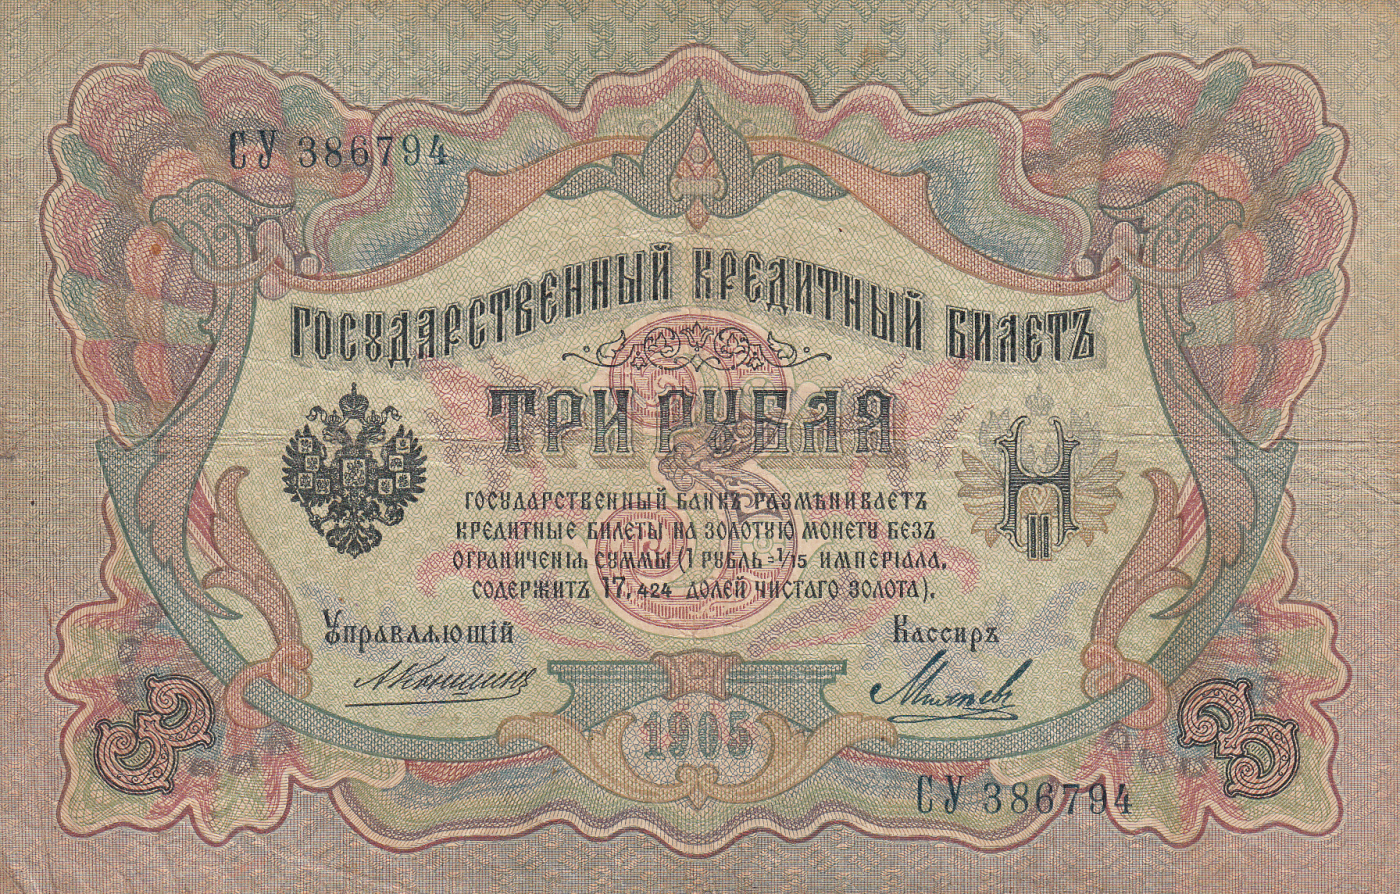 3 rubles 1905 signatures a konshin mihieyev 1905 issue 3